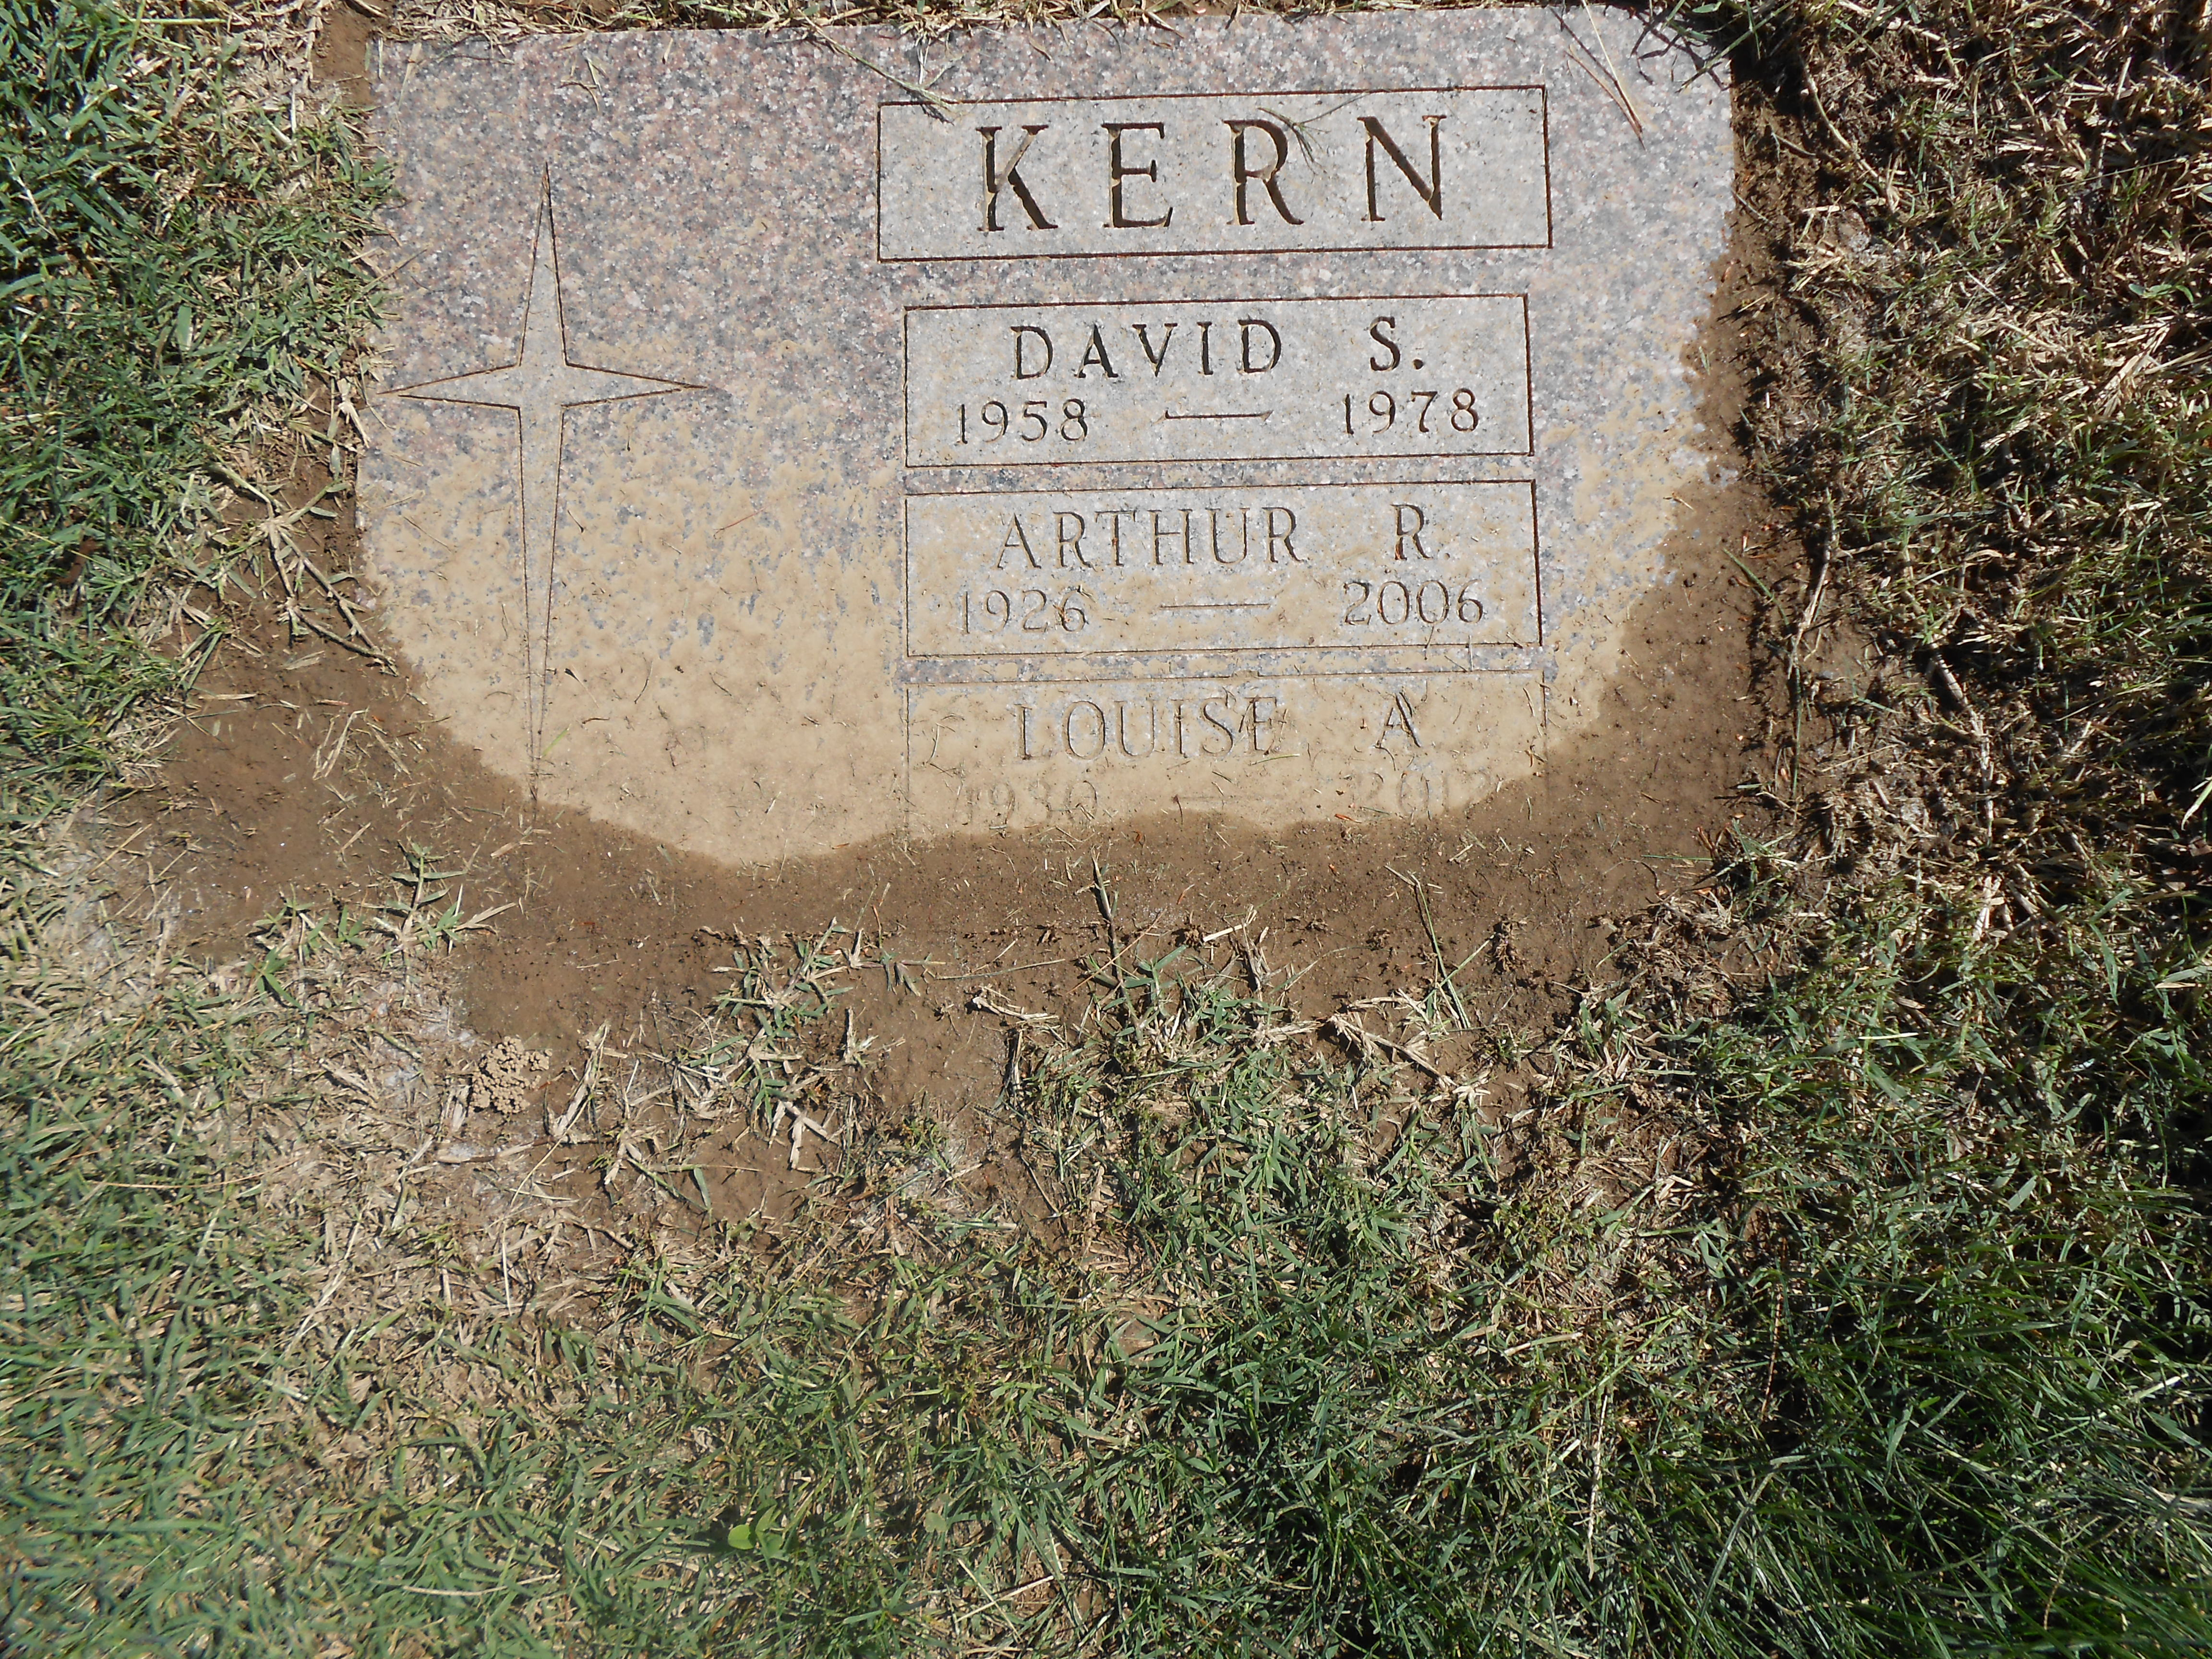 Louise A. <i>Scott</i> Kern